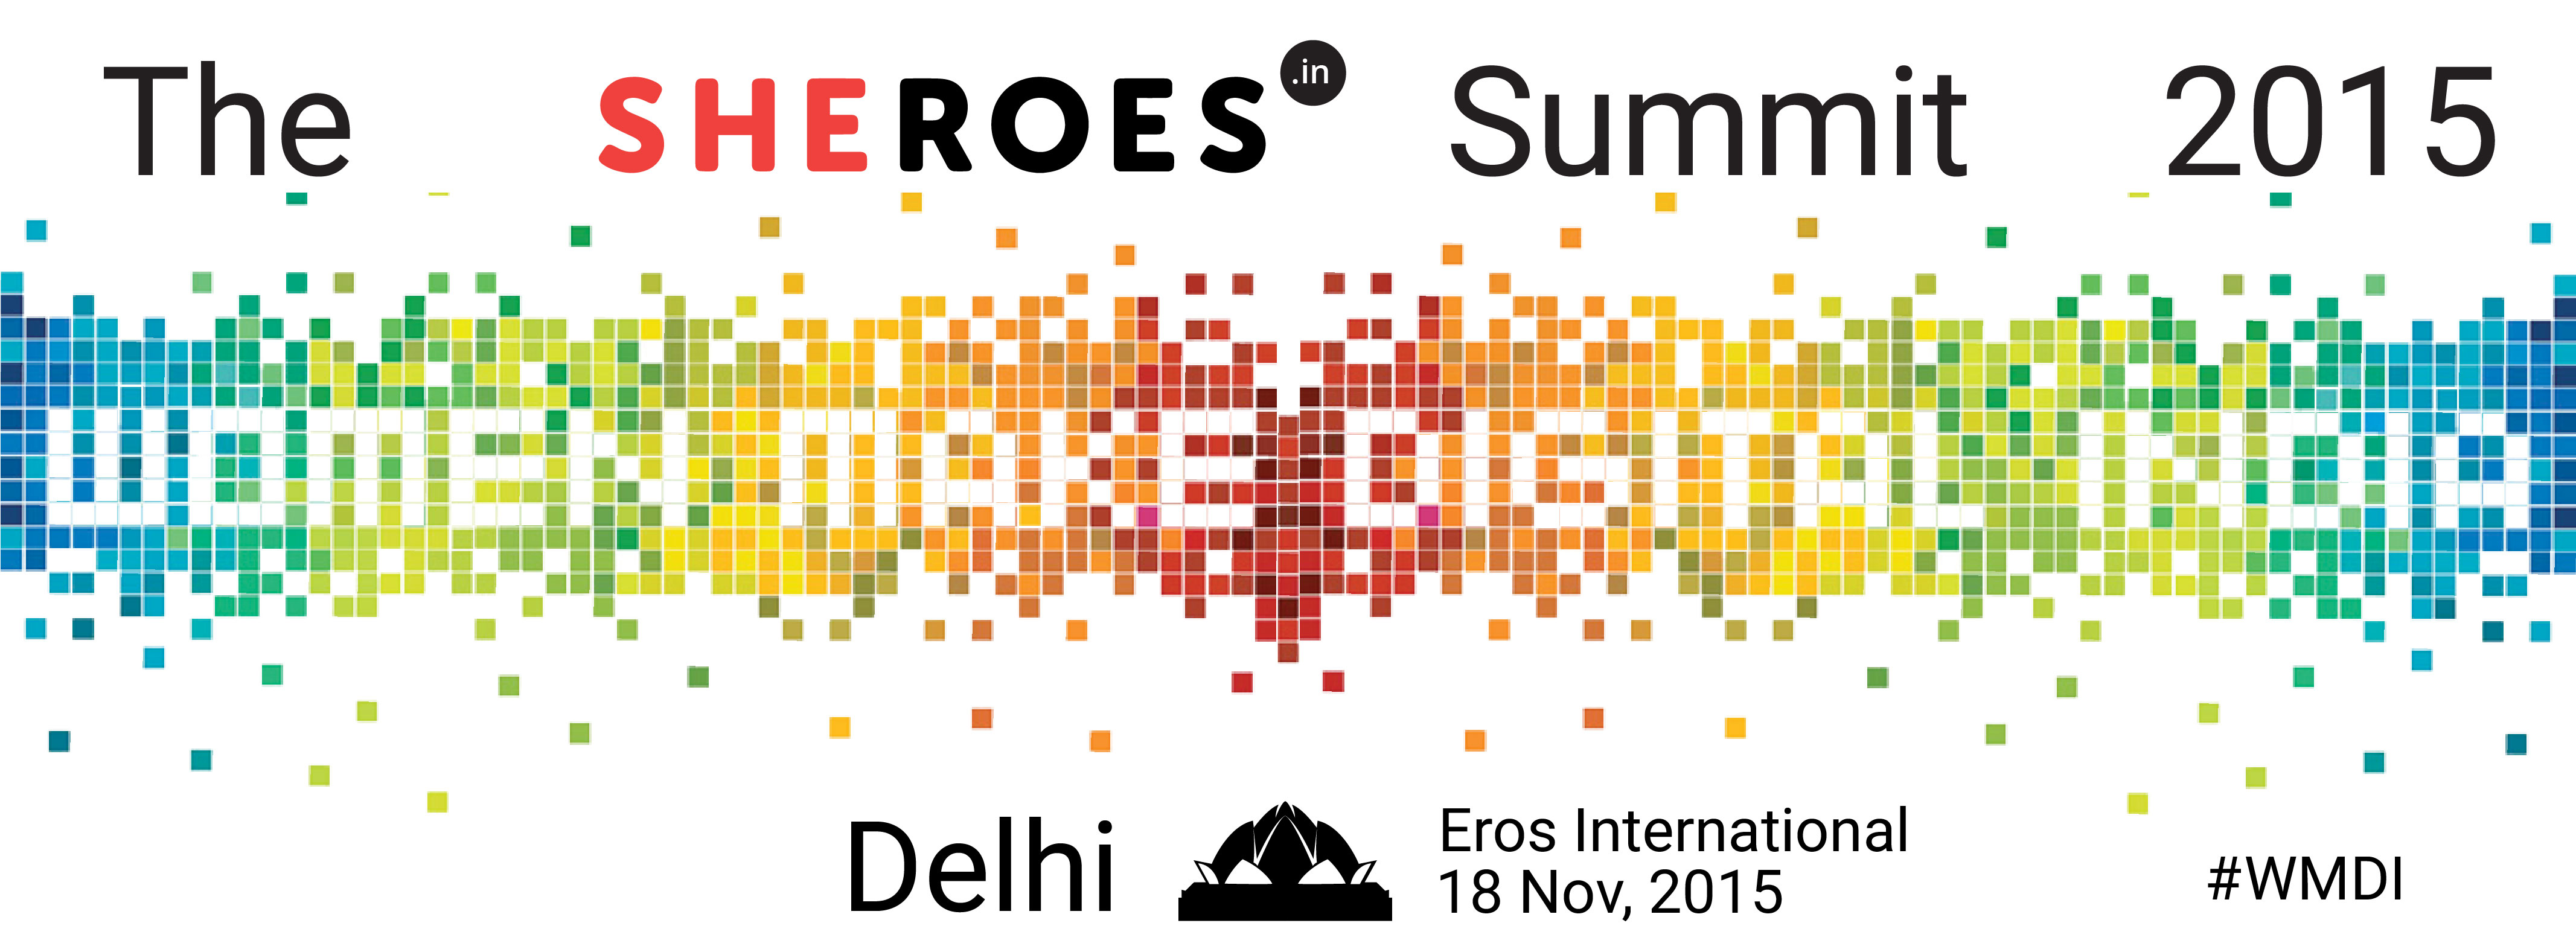 The SHEROES Summit Delhi